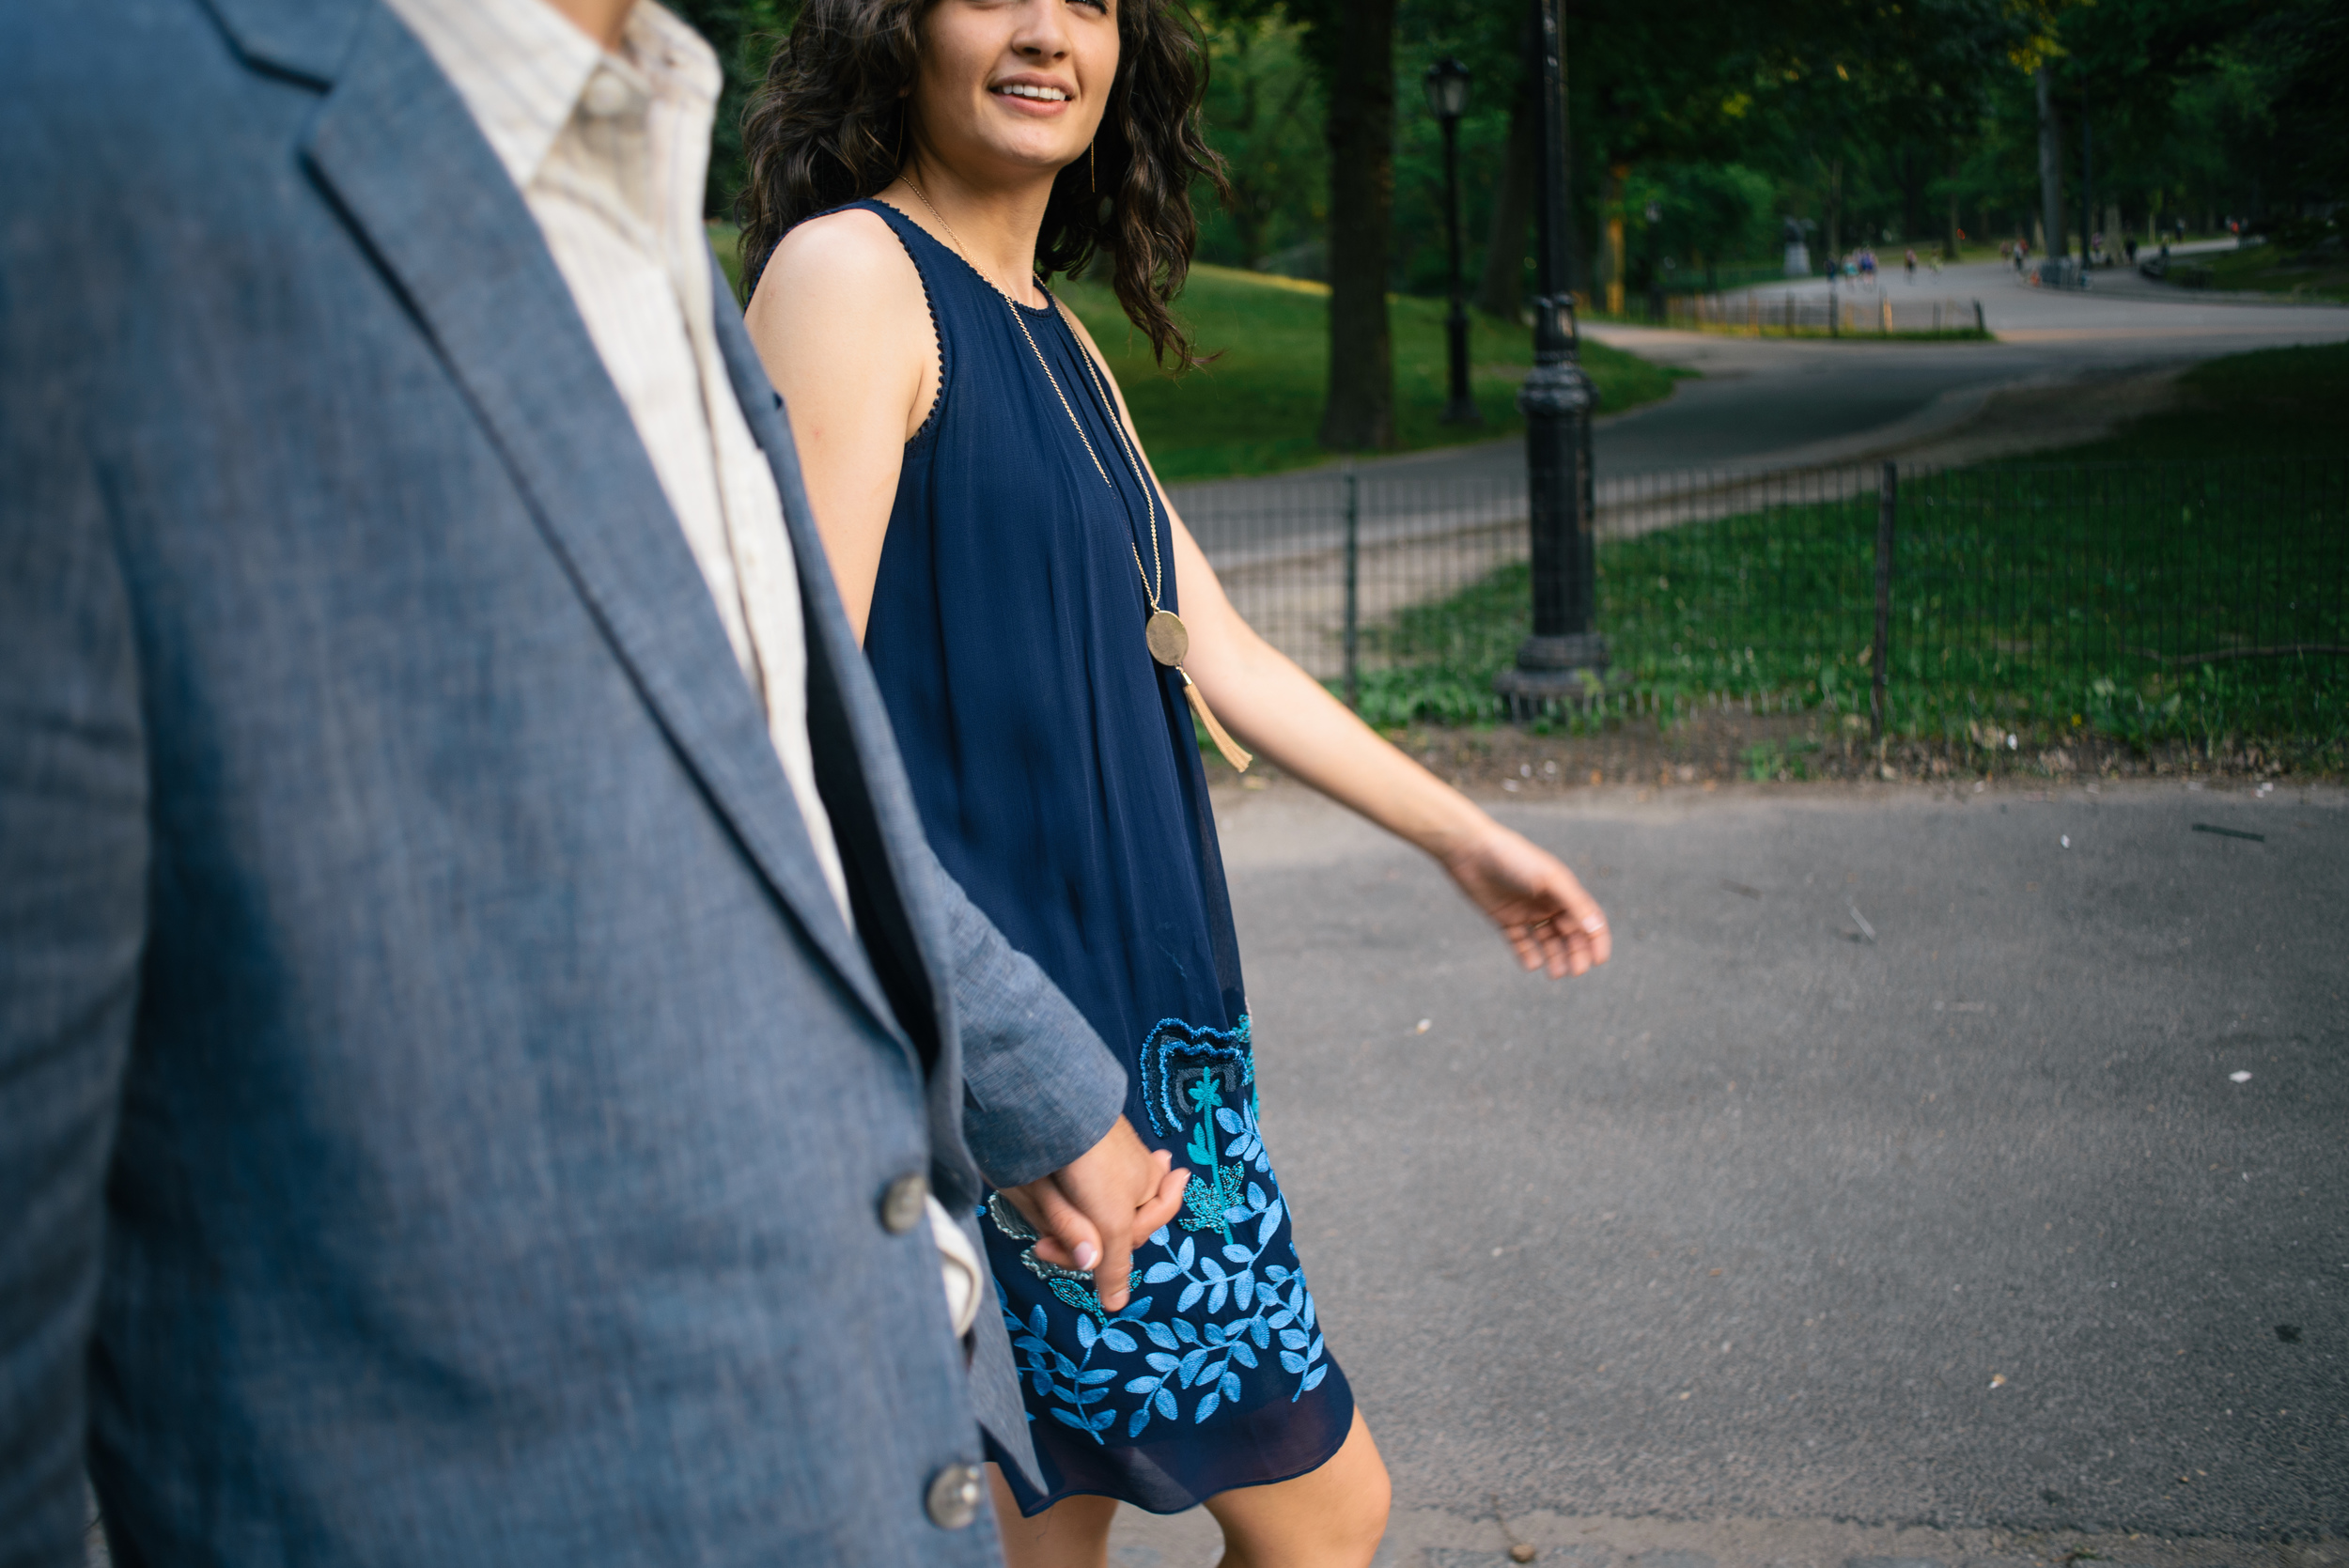 adam-and-tansy-new-york-city-central-park-lincoln-center-bethesda-fountain-engagement-session-june-2016- (69 of 176).jpg